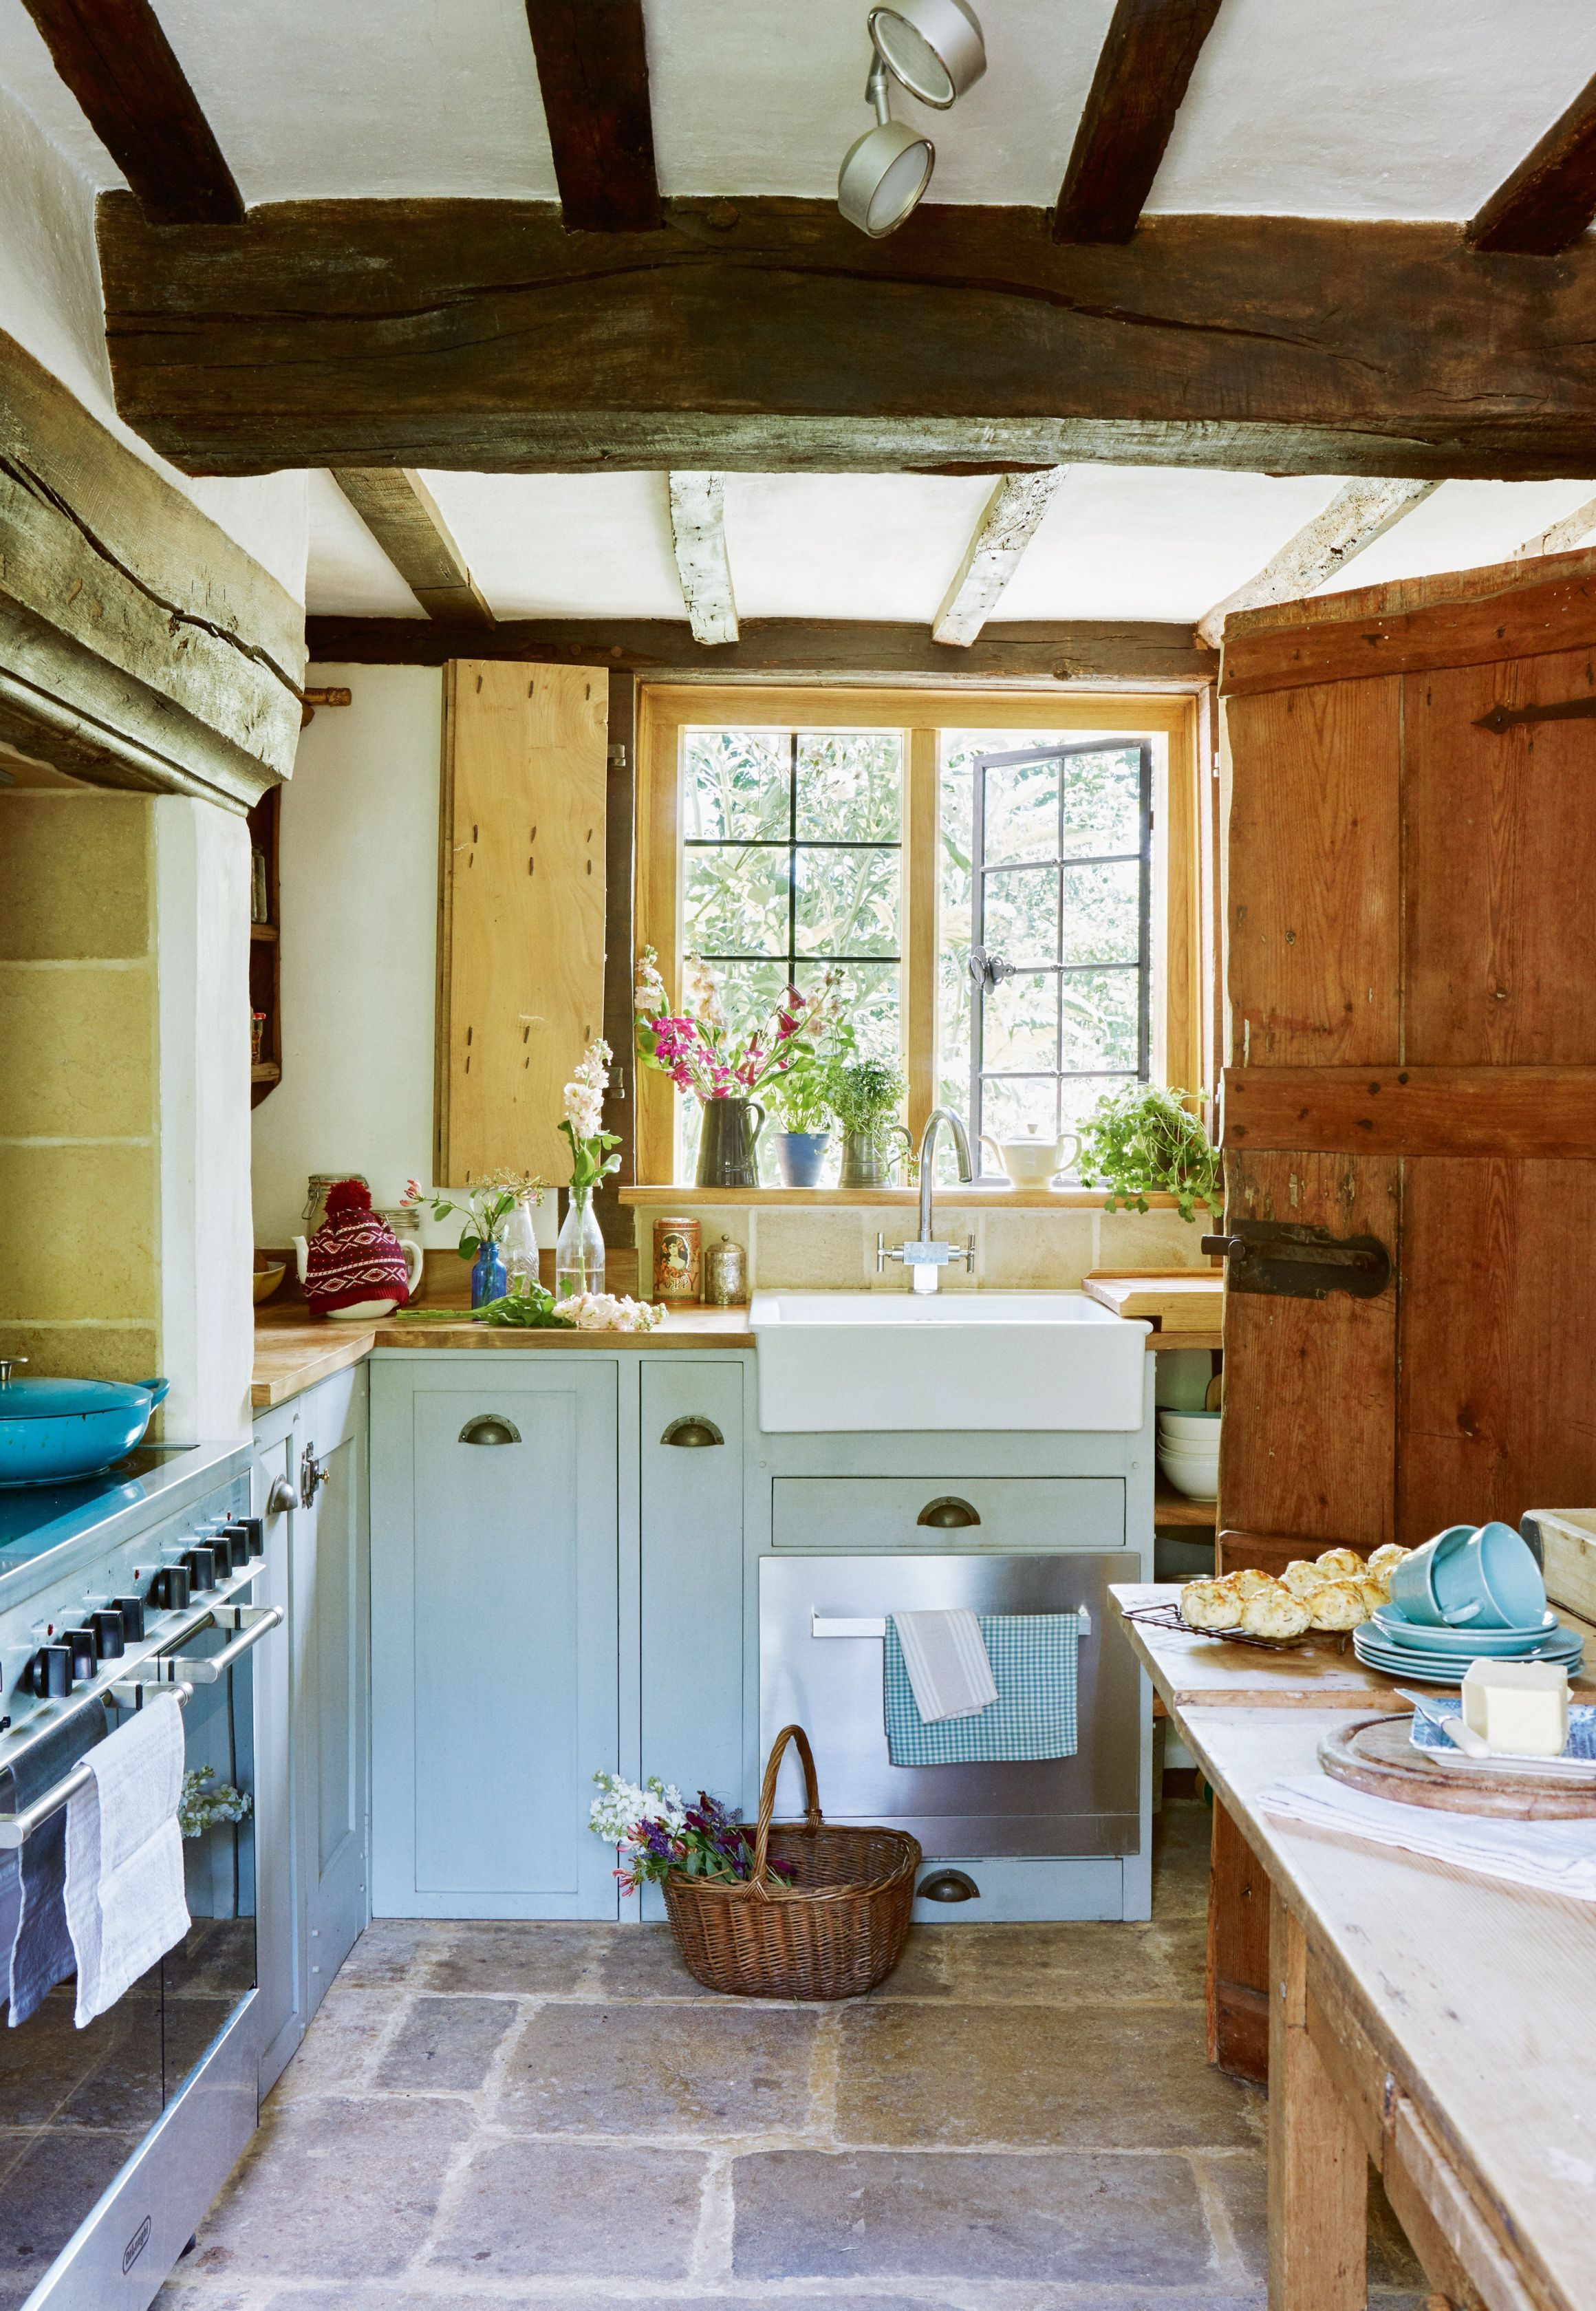 12 impressive kitchen decorating ideas for comfortable dinner country kitchen designs rustic on kitchen makeover ideas id=11521